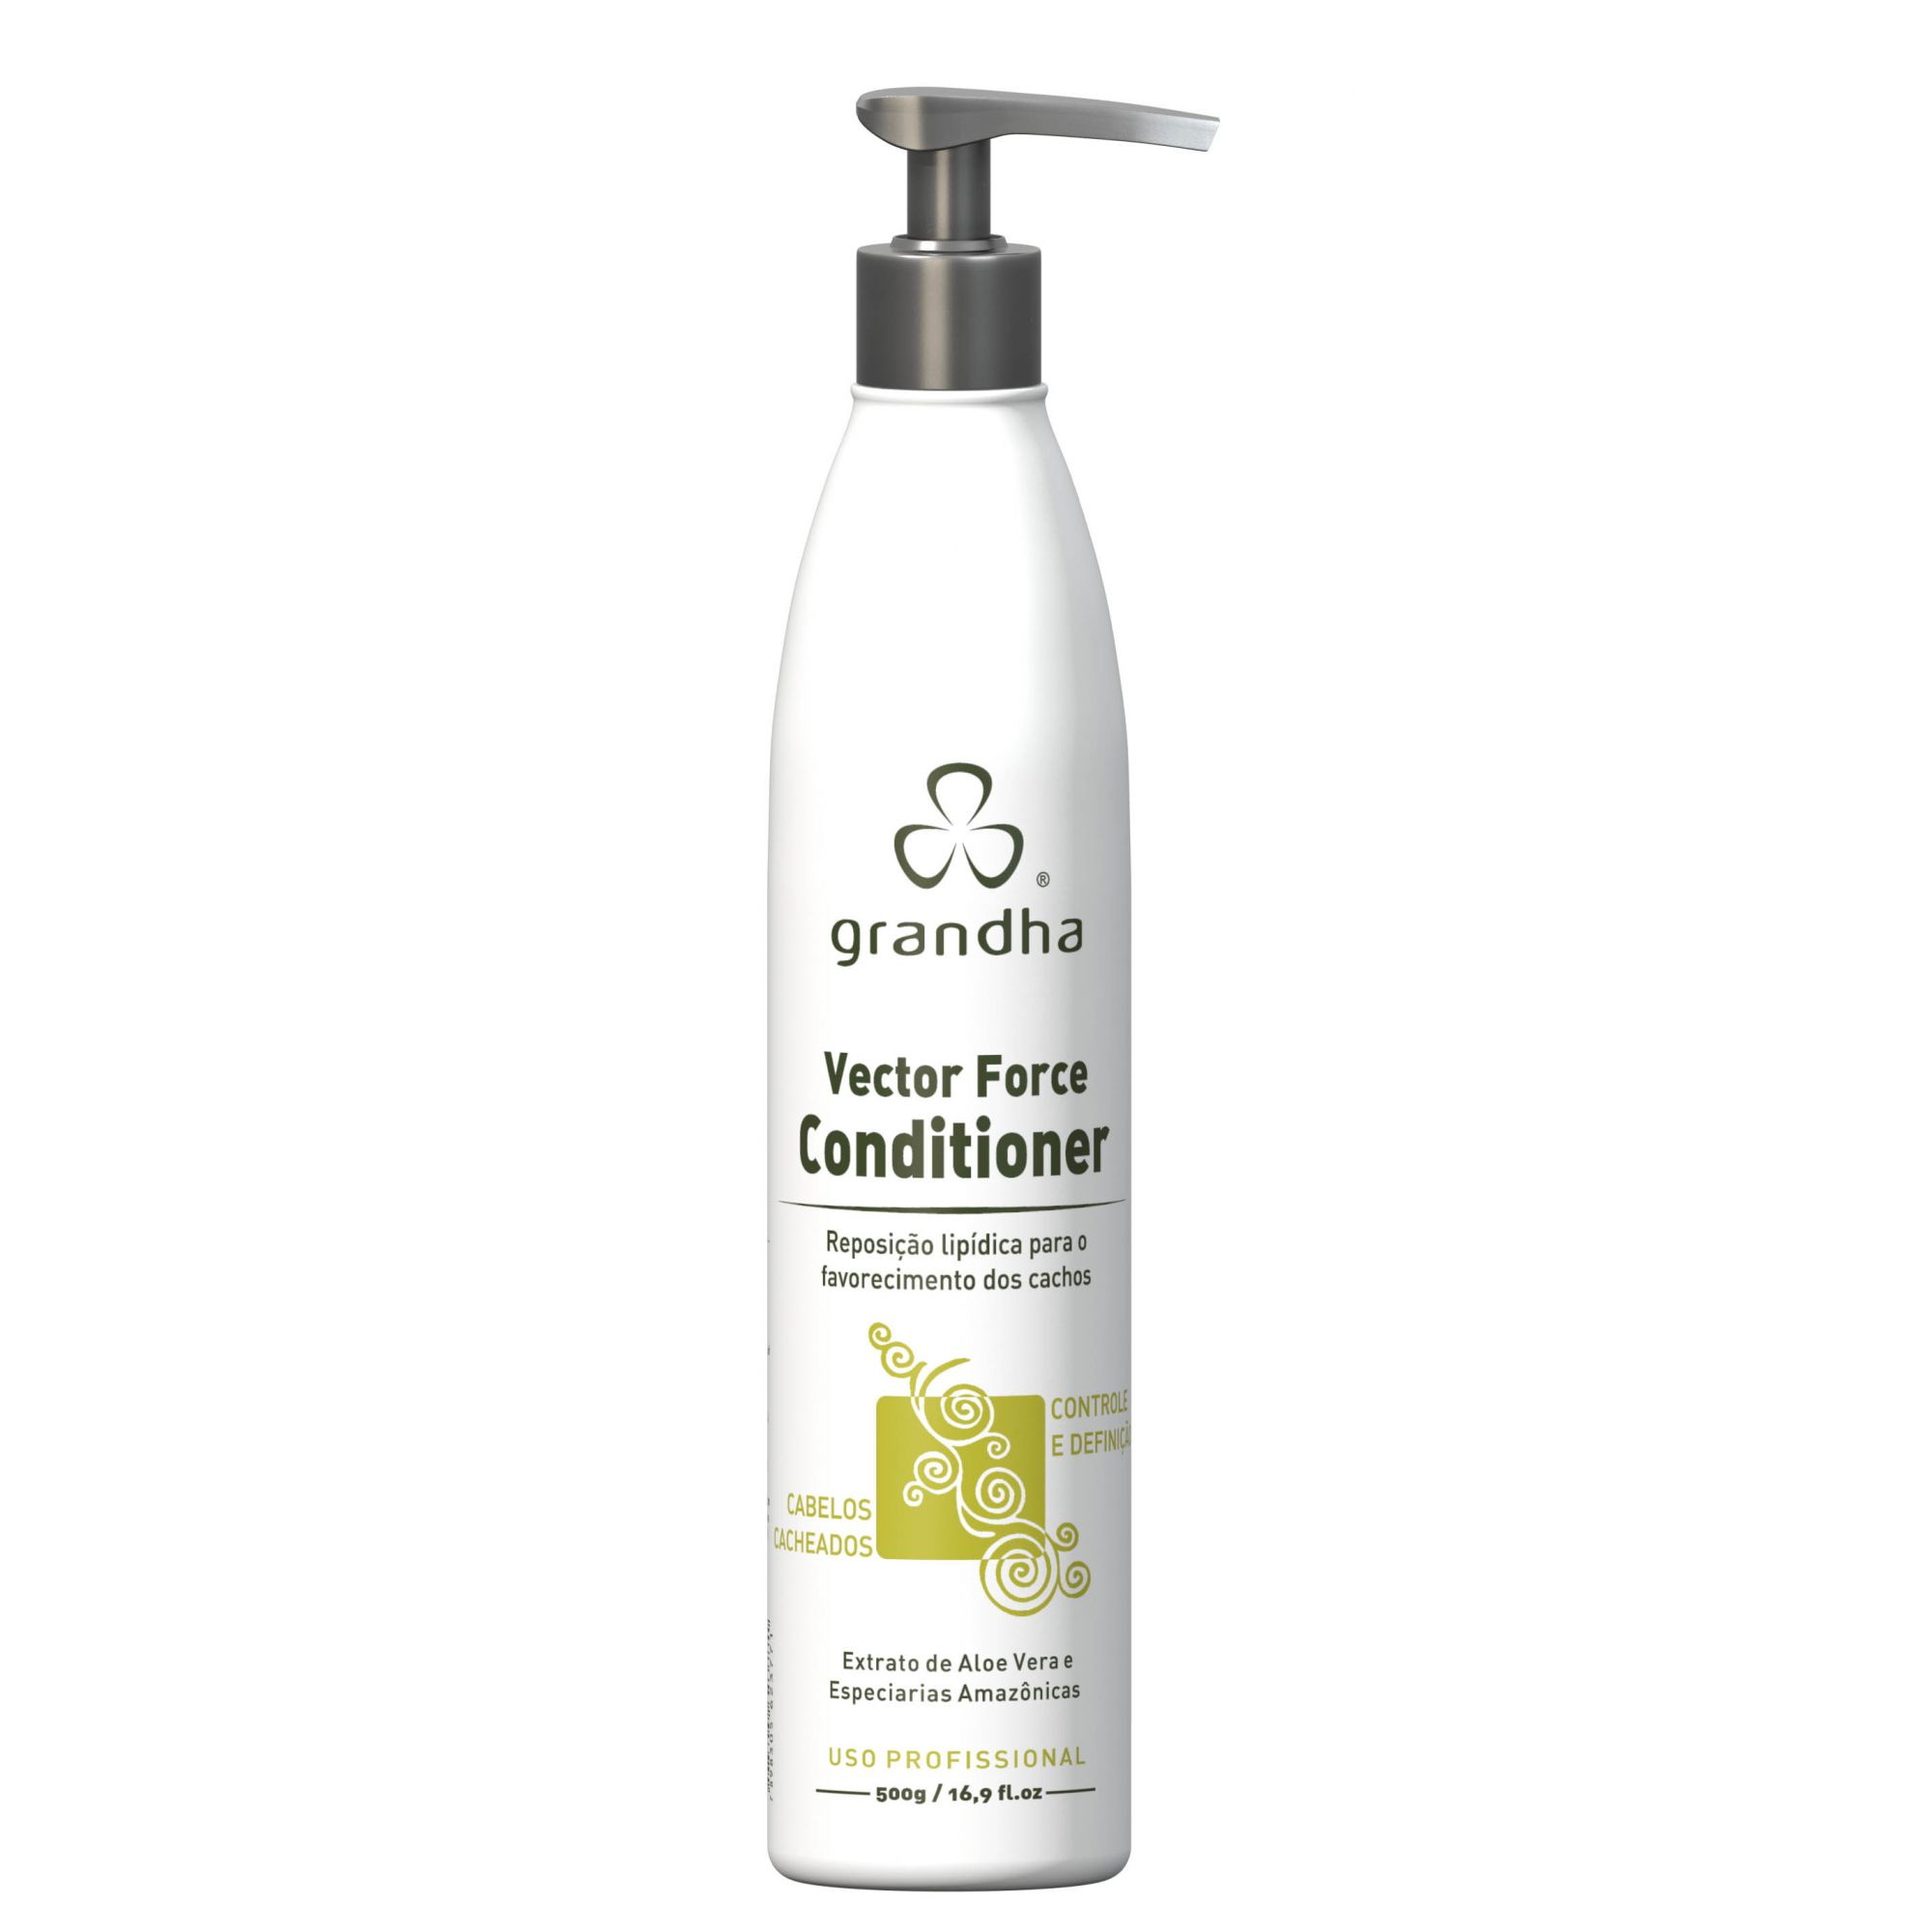 VECTOR FORCE CONDITIONER 500G - GRANDHA  - Beleza Outlet